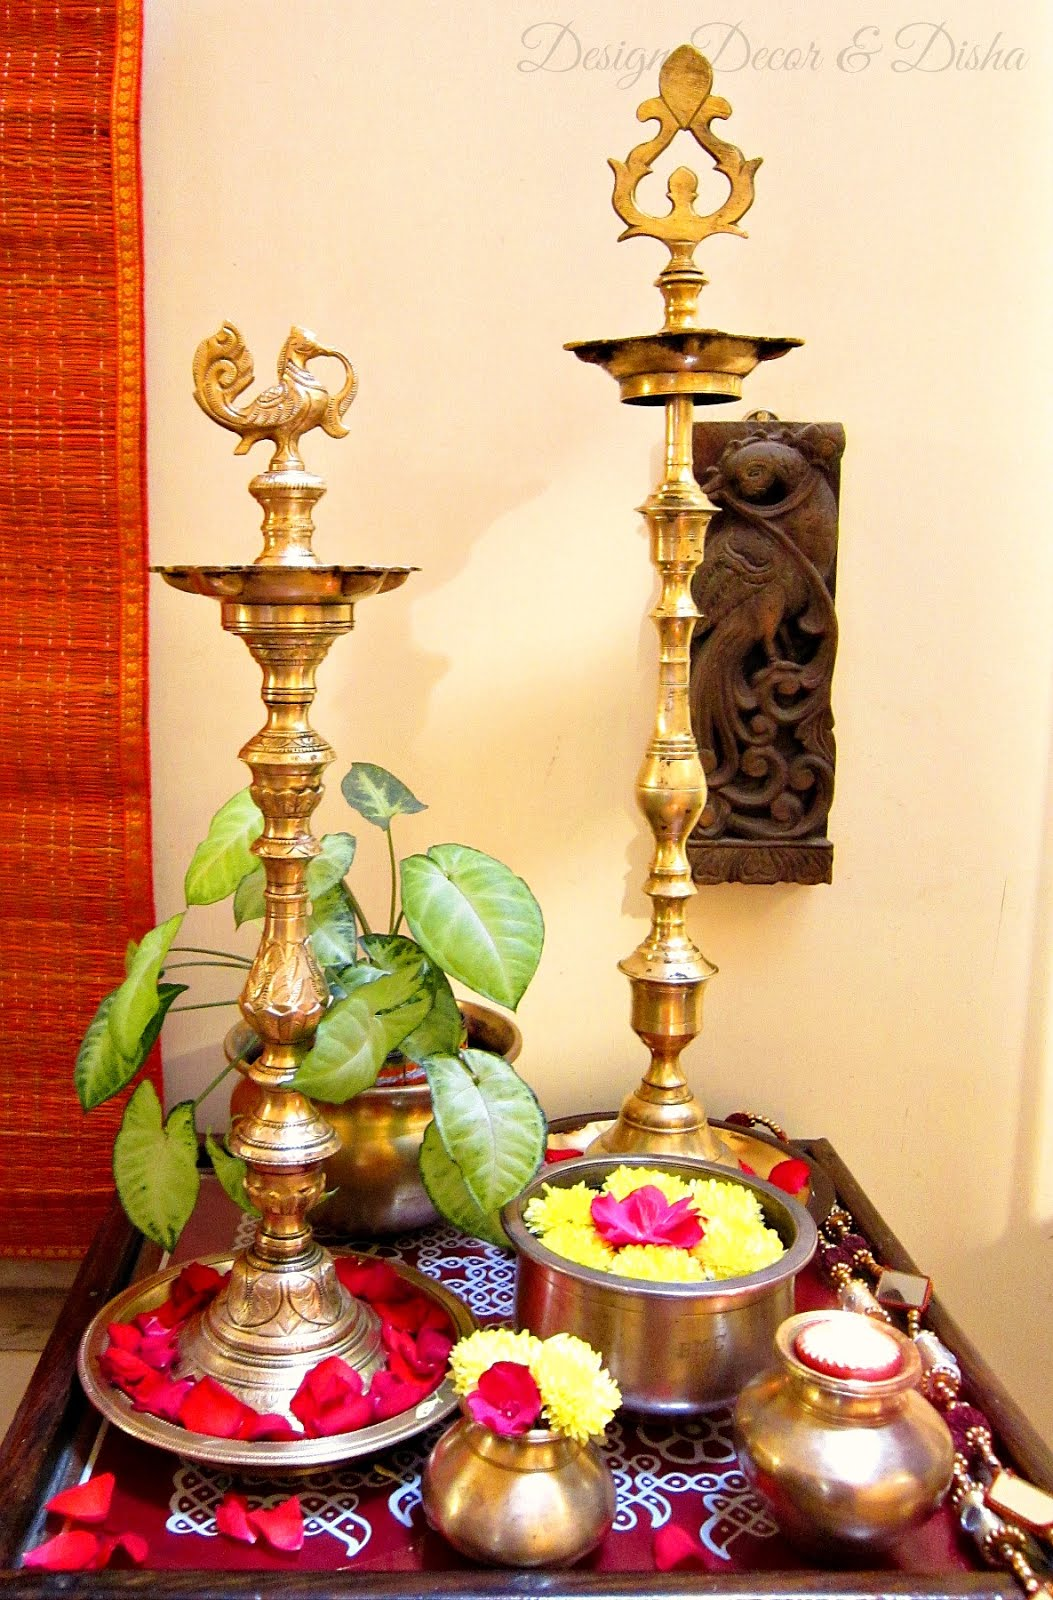 Decorative Ideas For Living Room Small: An Indian Design & Decor Blog